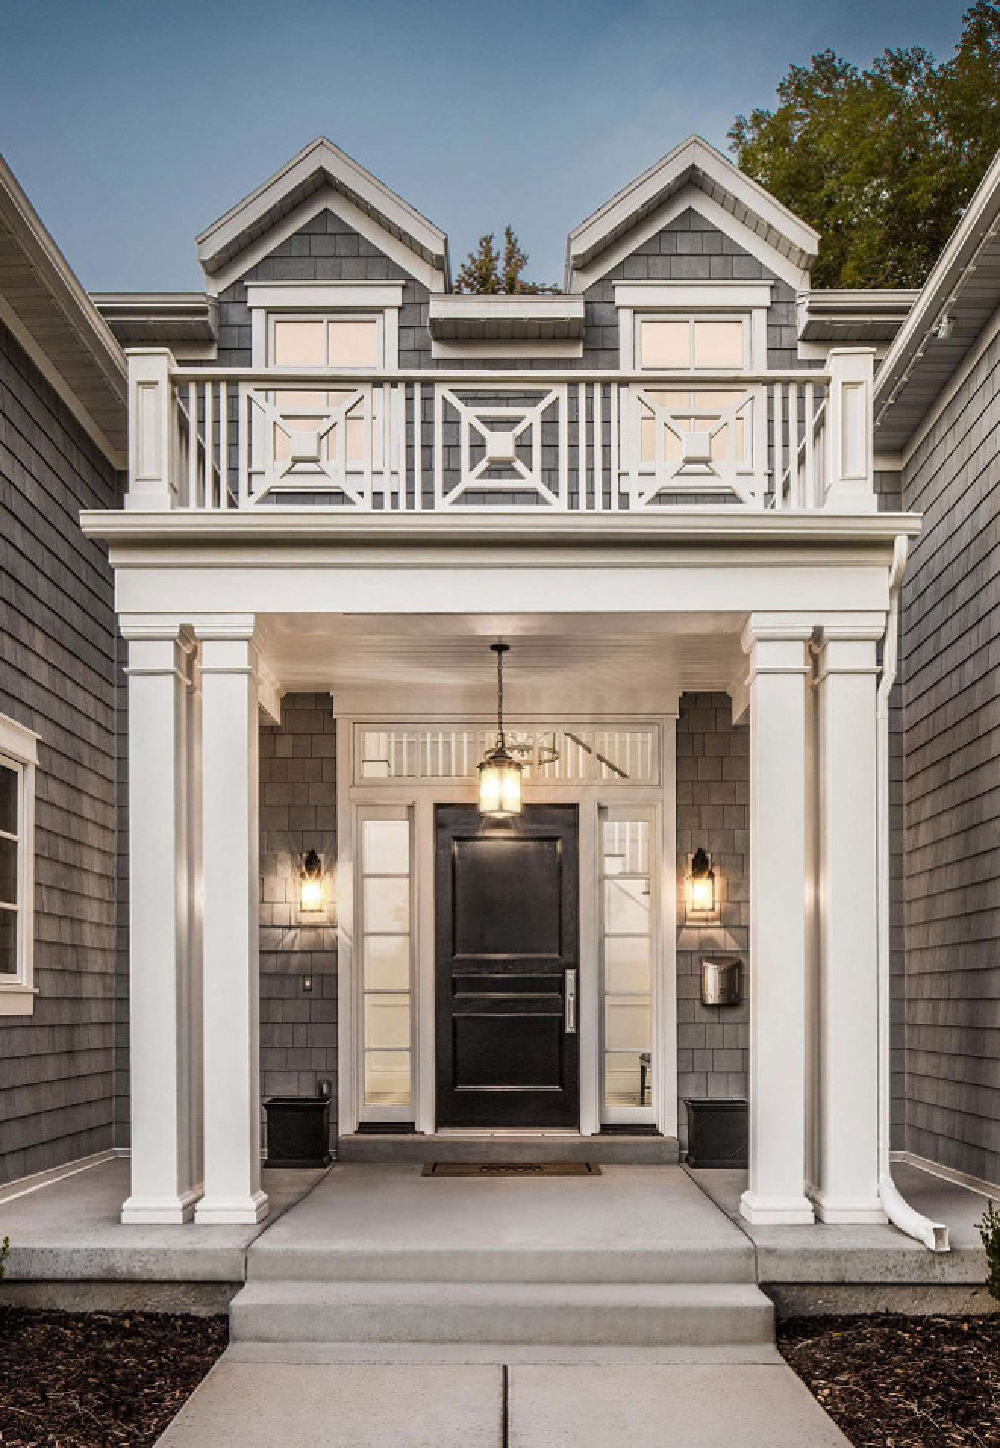 Beautiful architecture and portico railing inspiration from a home by The Fox Group. Come be inspired by more timeless design. #thefoxgroup #houseexterior #portico #architectureinspiration